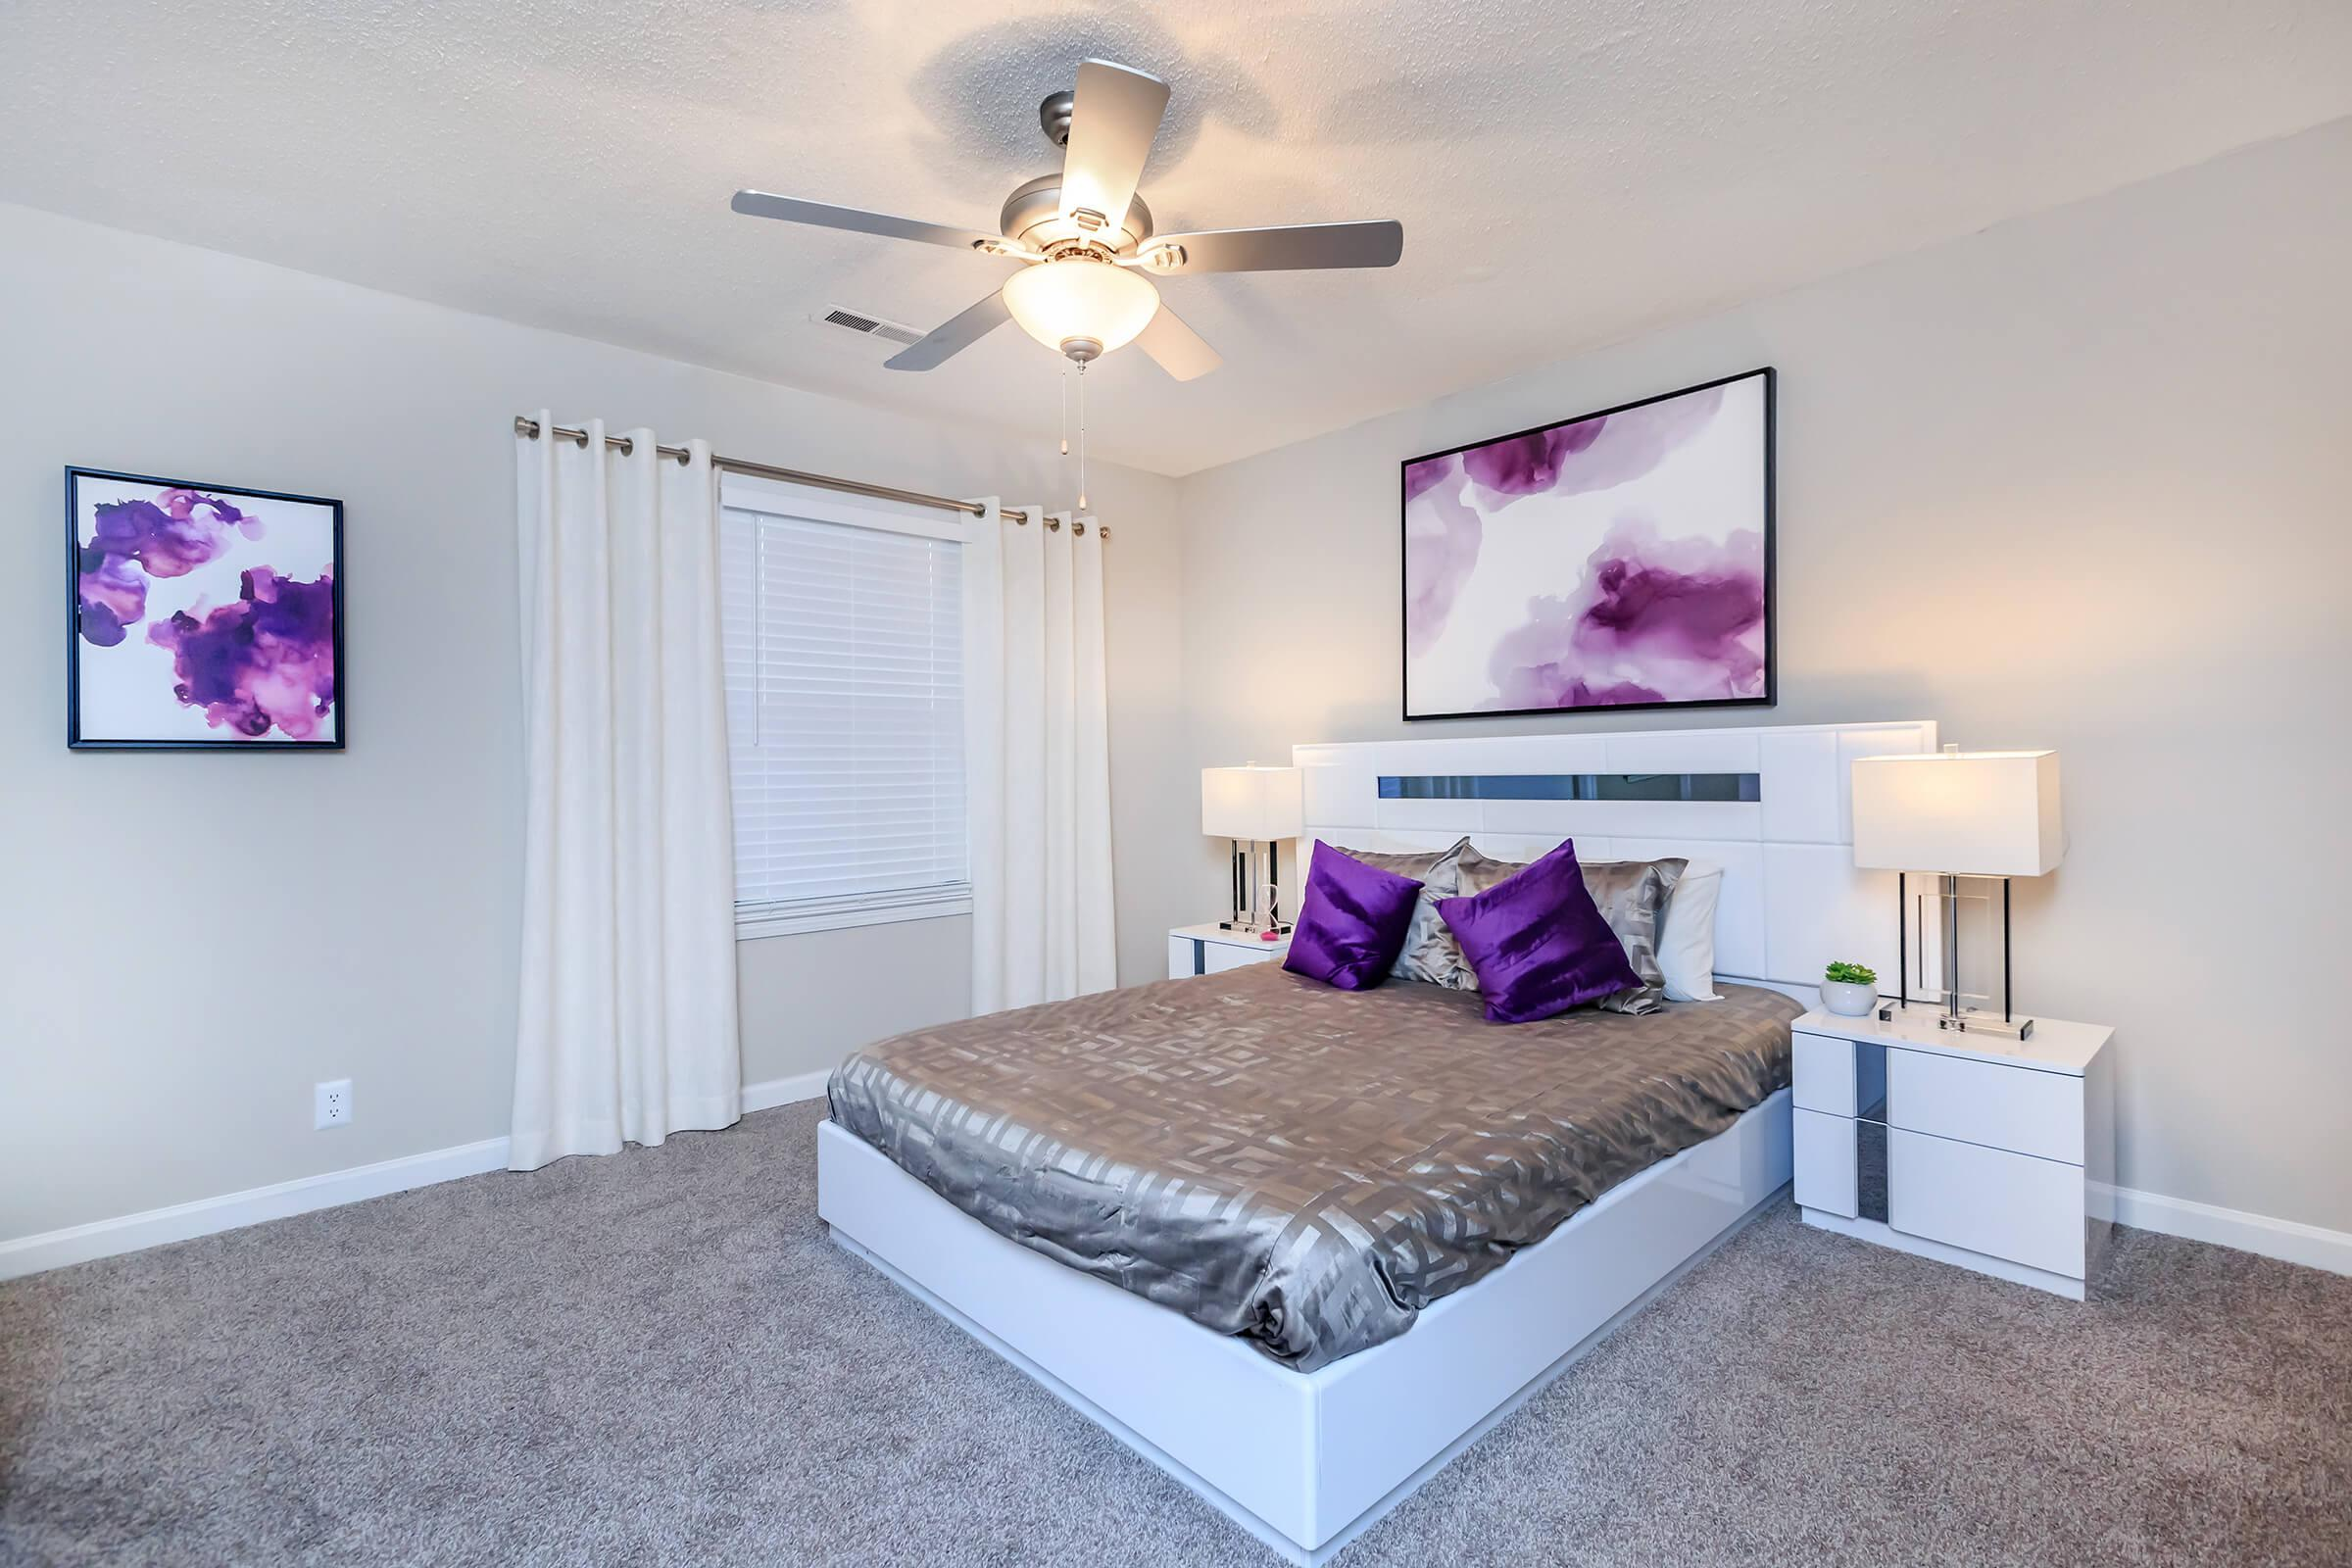 a bedroom with a bed and a flat screen tv